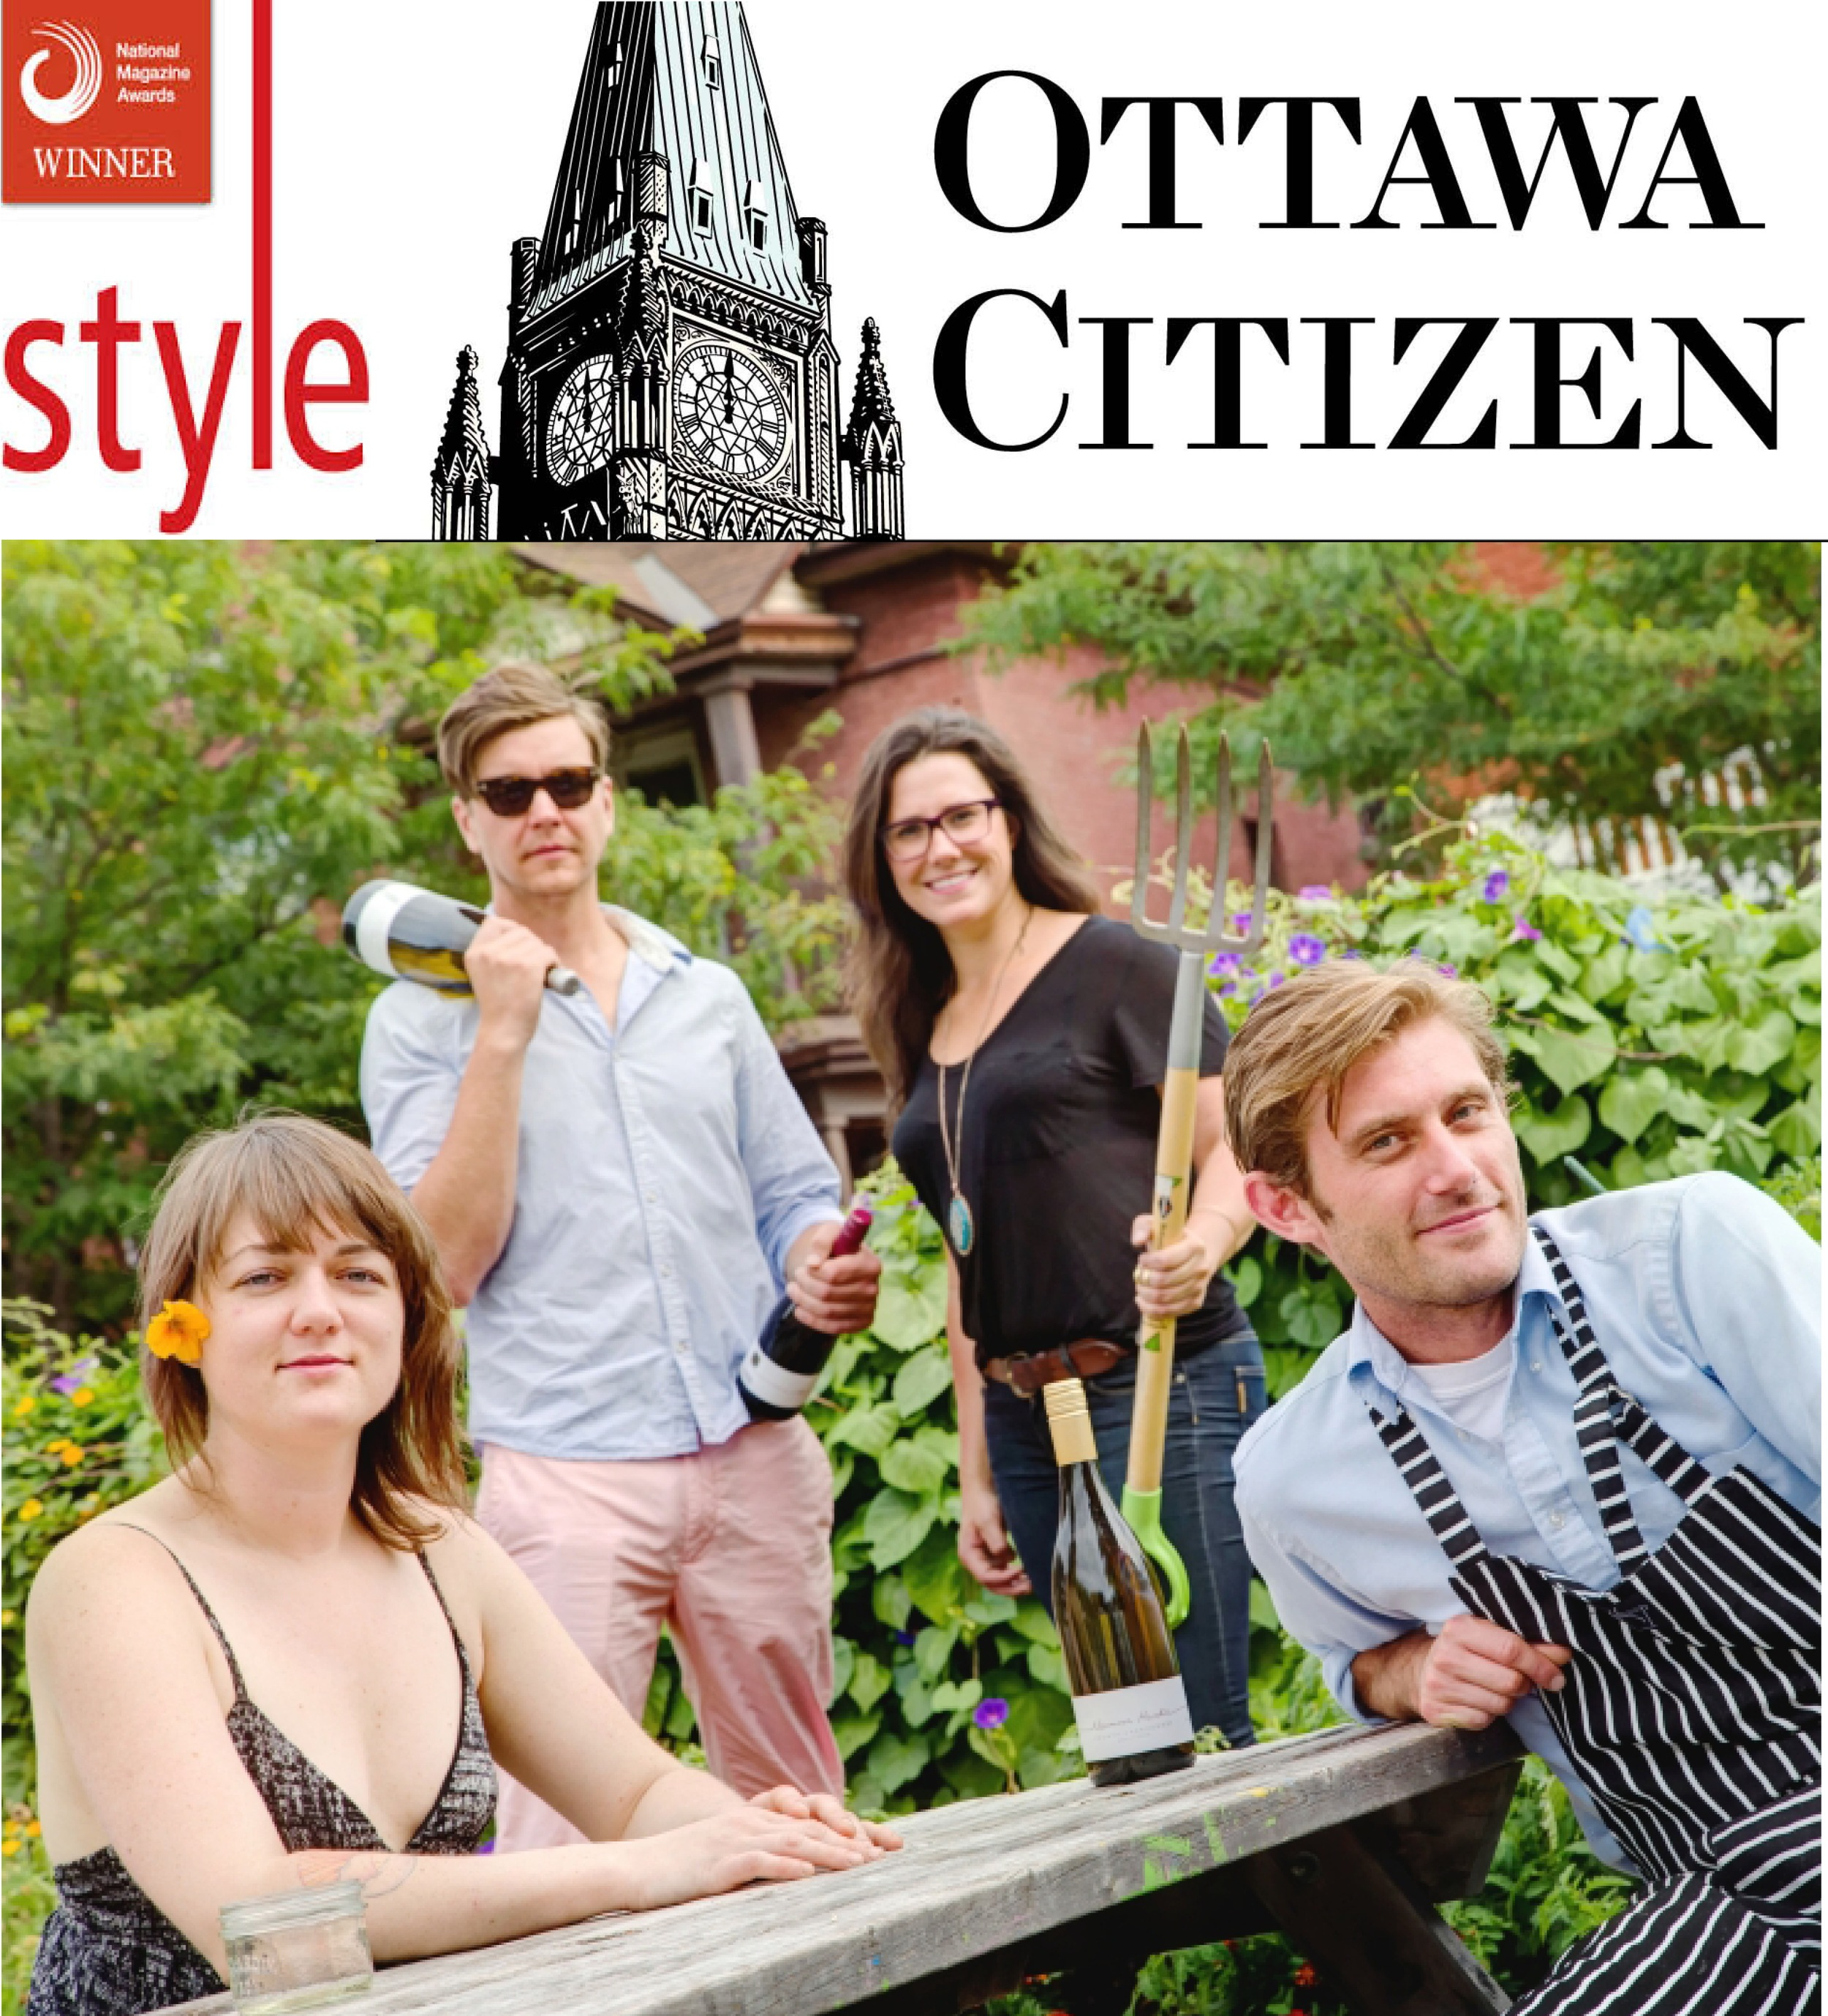 Garden of Eatin' - Ottawa Citizen, Sept 5, 2013